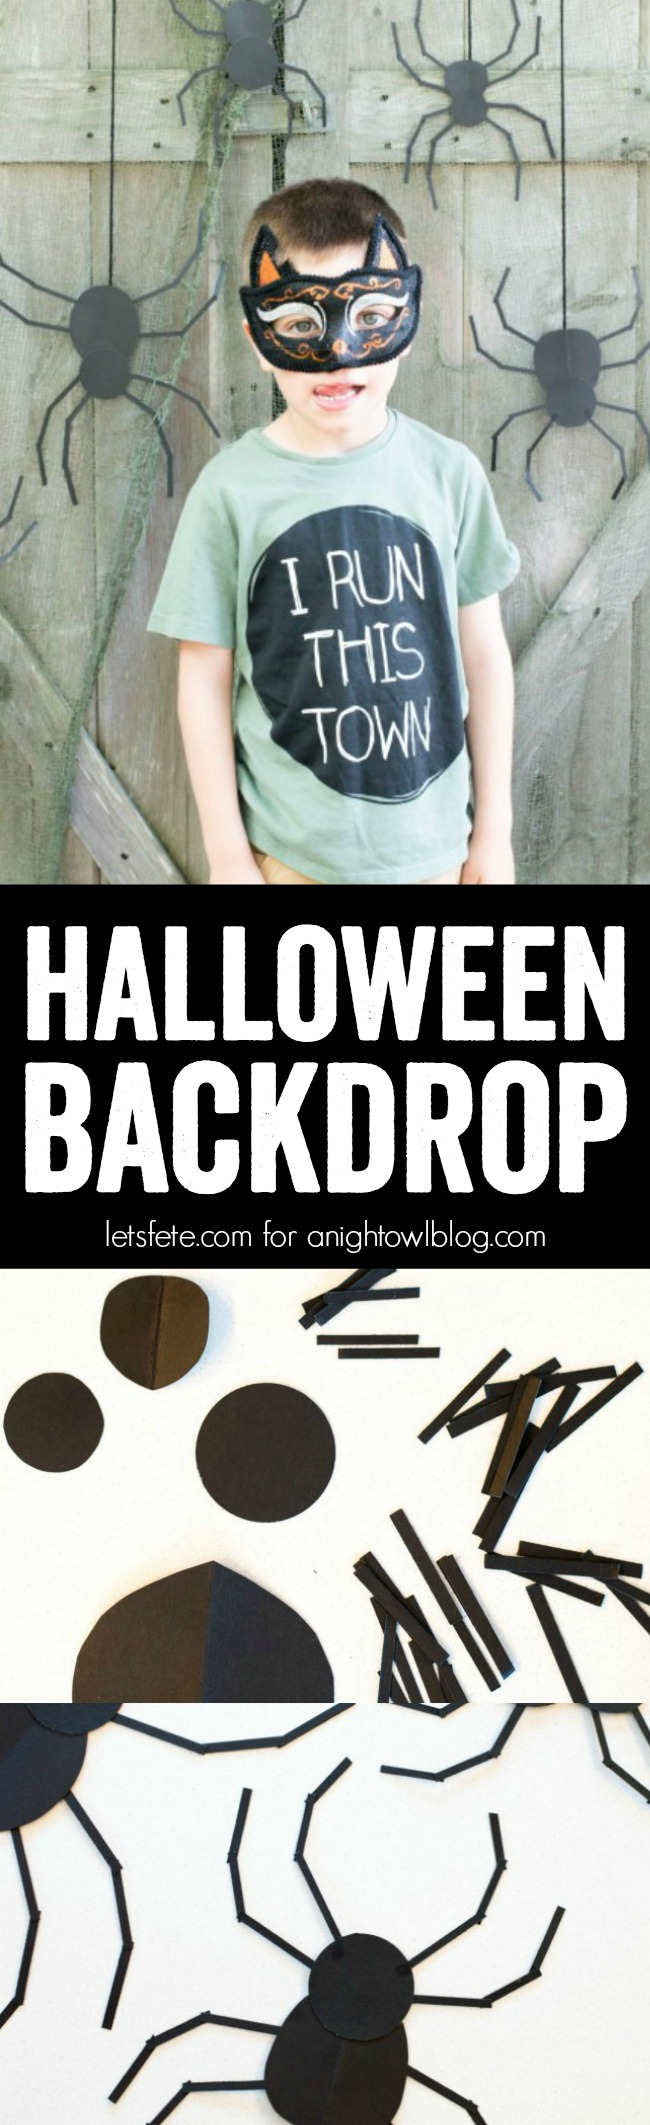 This Halloween, create a DIY Halloween Photo Backdrop for less than $5 to capture all those fun costumes and moments!